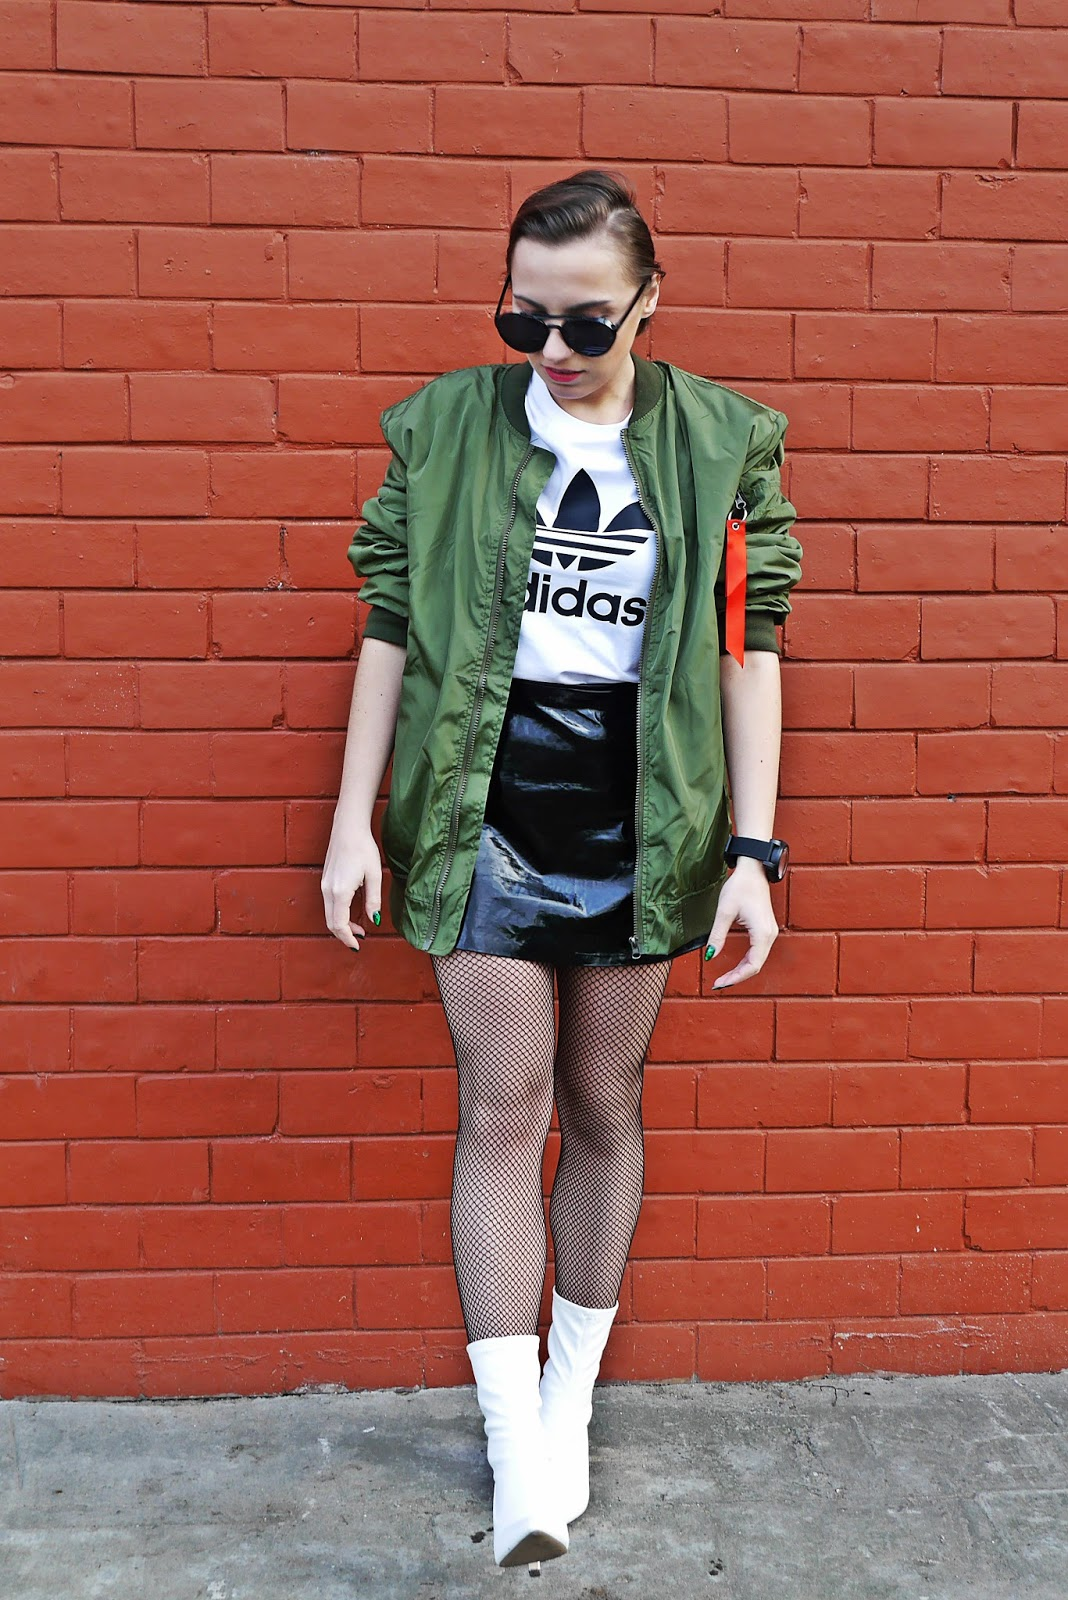 1_oversize_green_bomber_jacet_white_boots_adidas_tshirt_karyn_blog_modowy_080318a